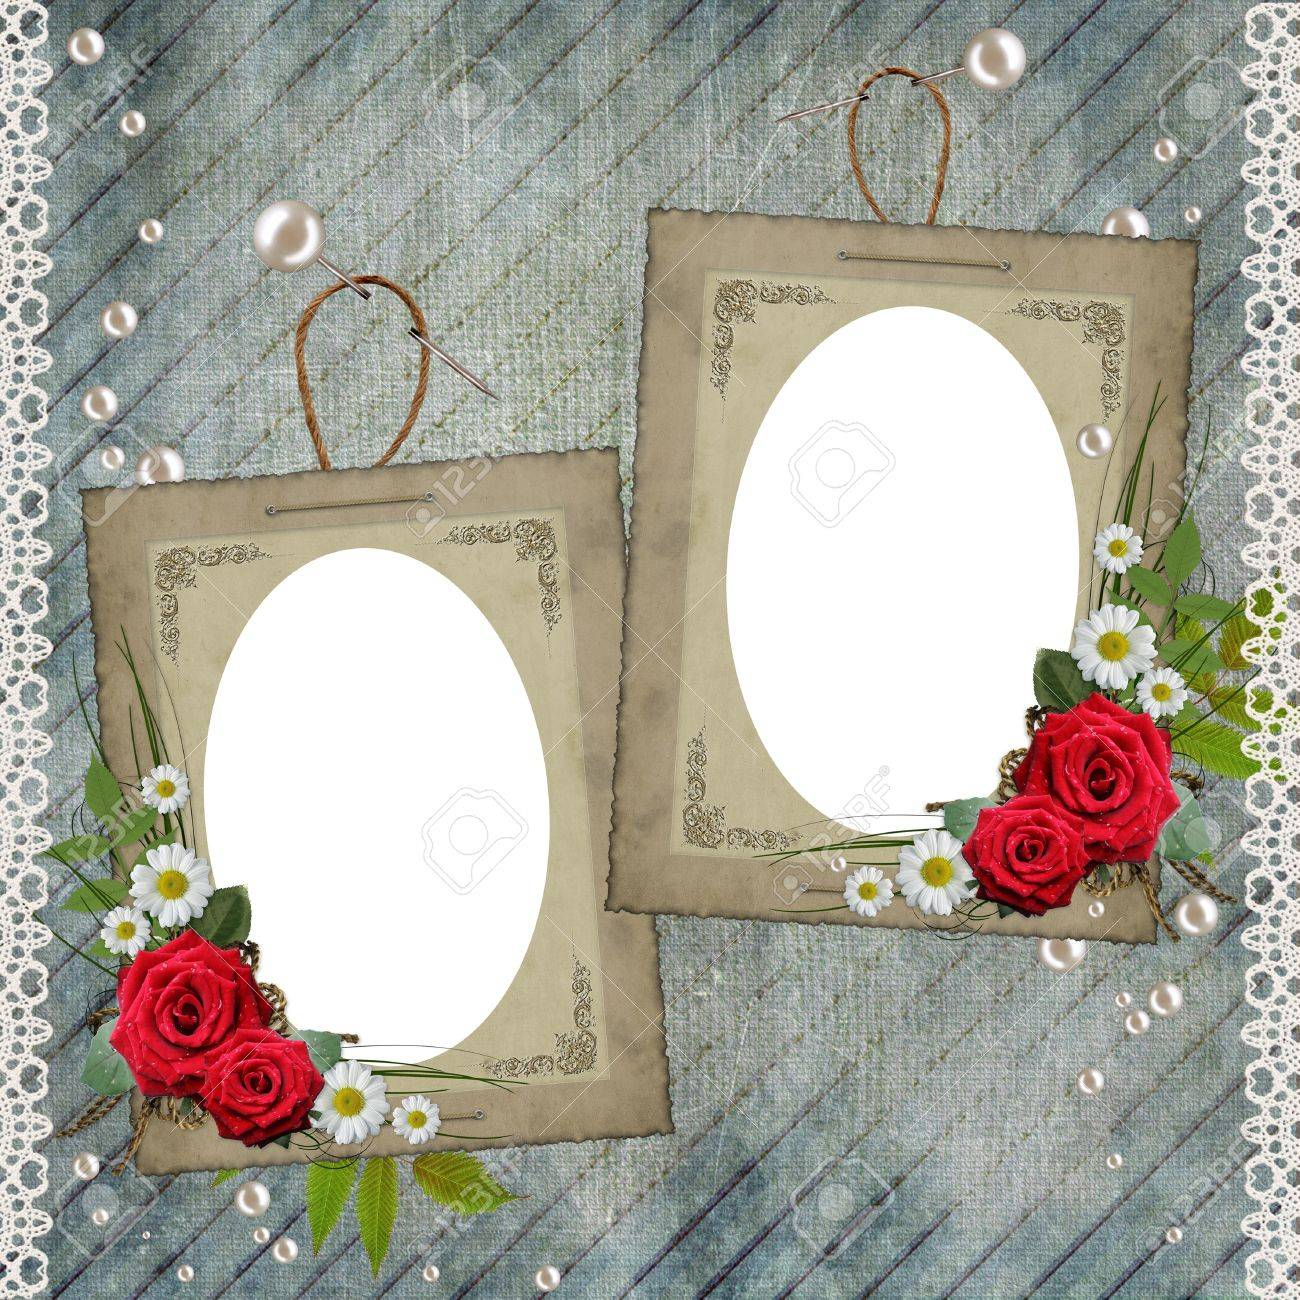 Old decorative frame with flowers and pearls Stock Photo - 9292539